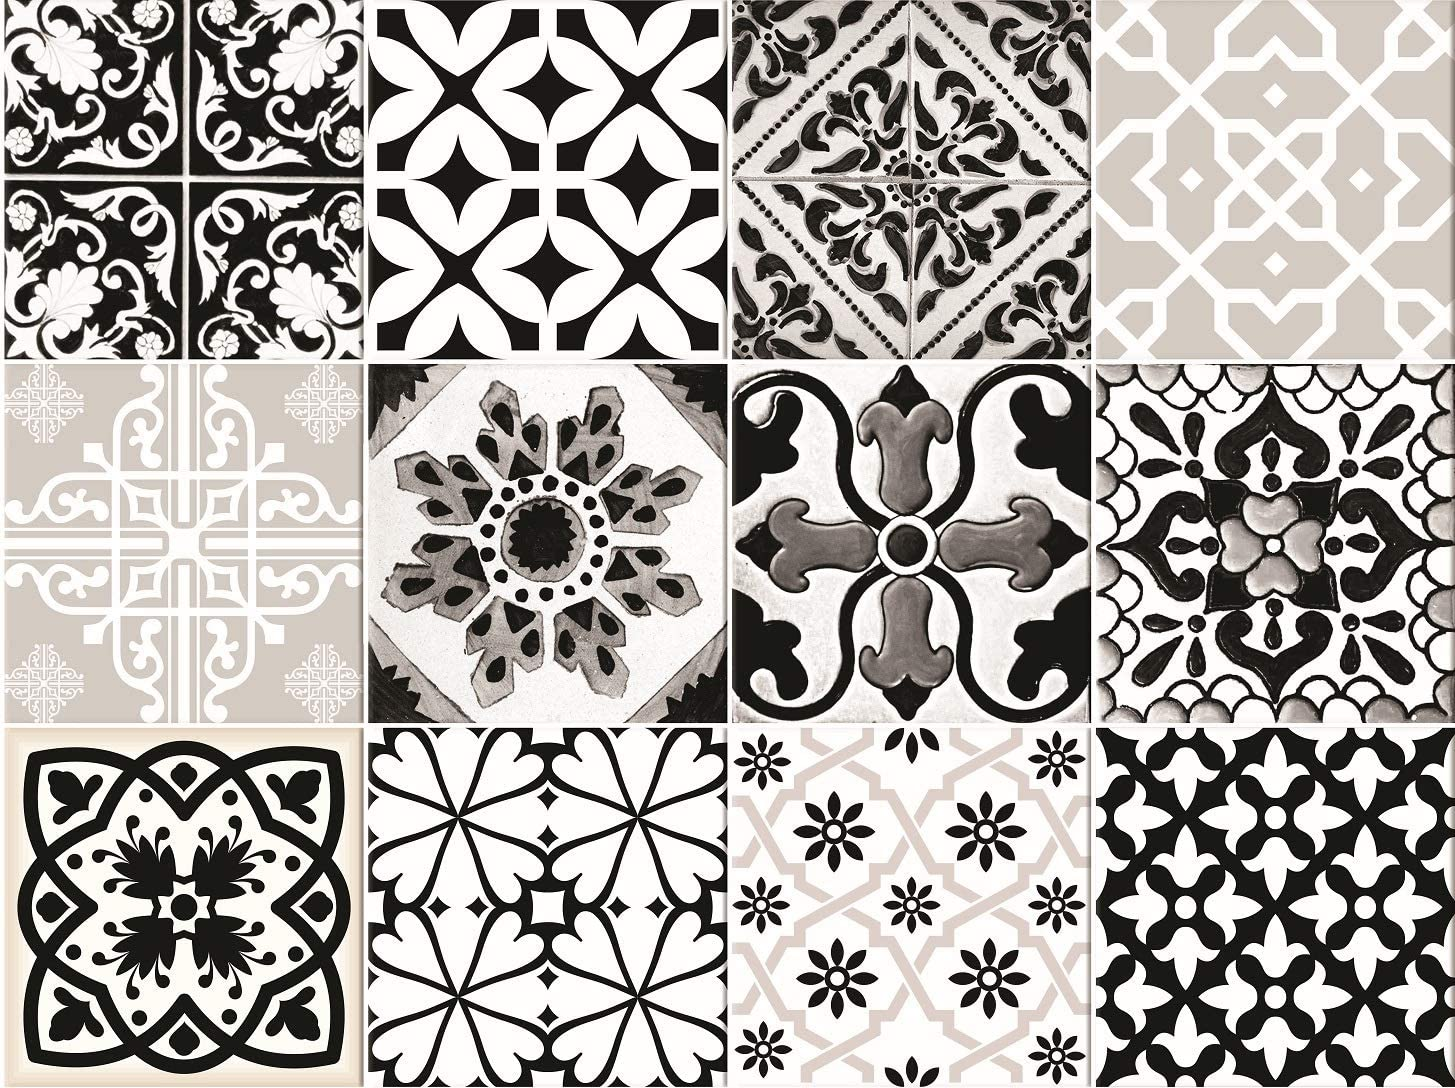 Mi Alma Black & White Collection Peel and Stick Tile Stickers 24 PC Set backsplash Tile Decals Bathroom & Kitchen Vinyl Wall Decals Easy to Apply Just Peel & Stick Home Decor (Line Decals, 4x4 Inch)